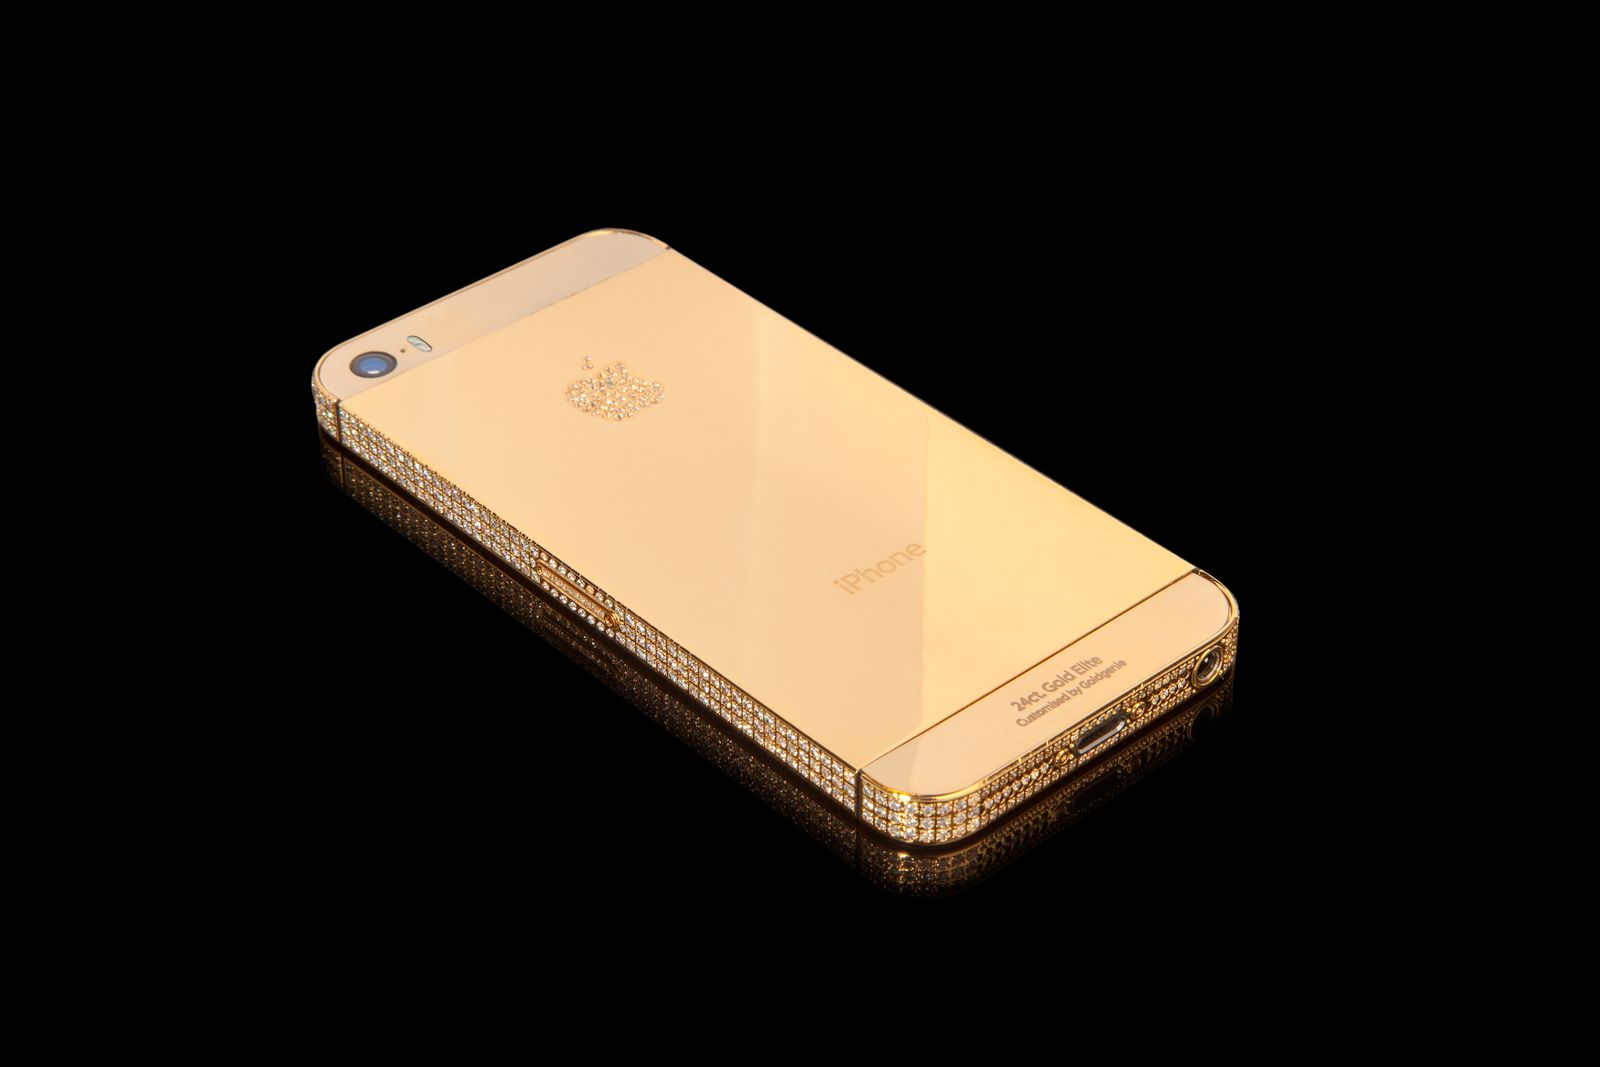 iPhone 5s / Gold